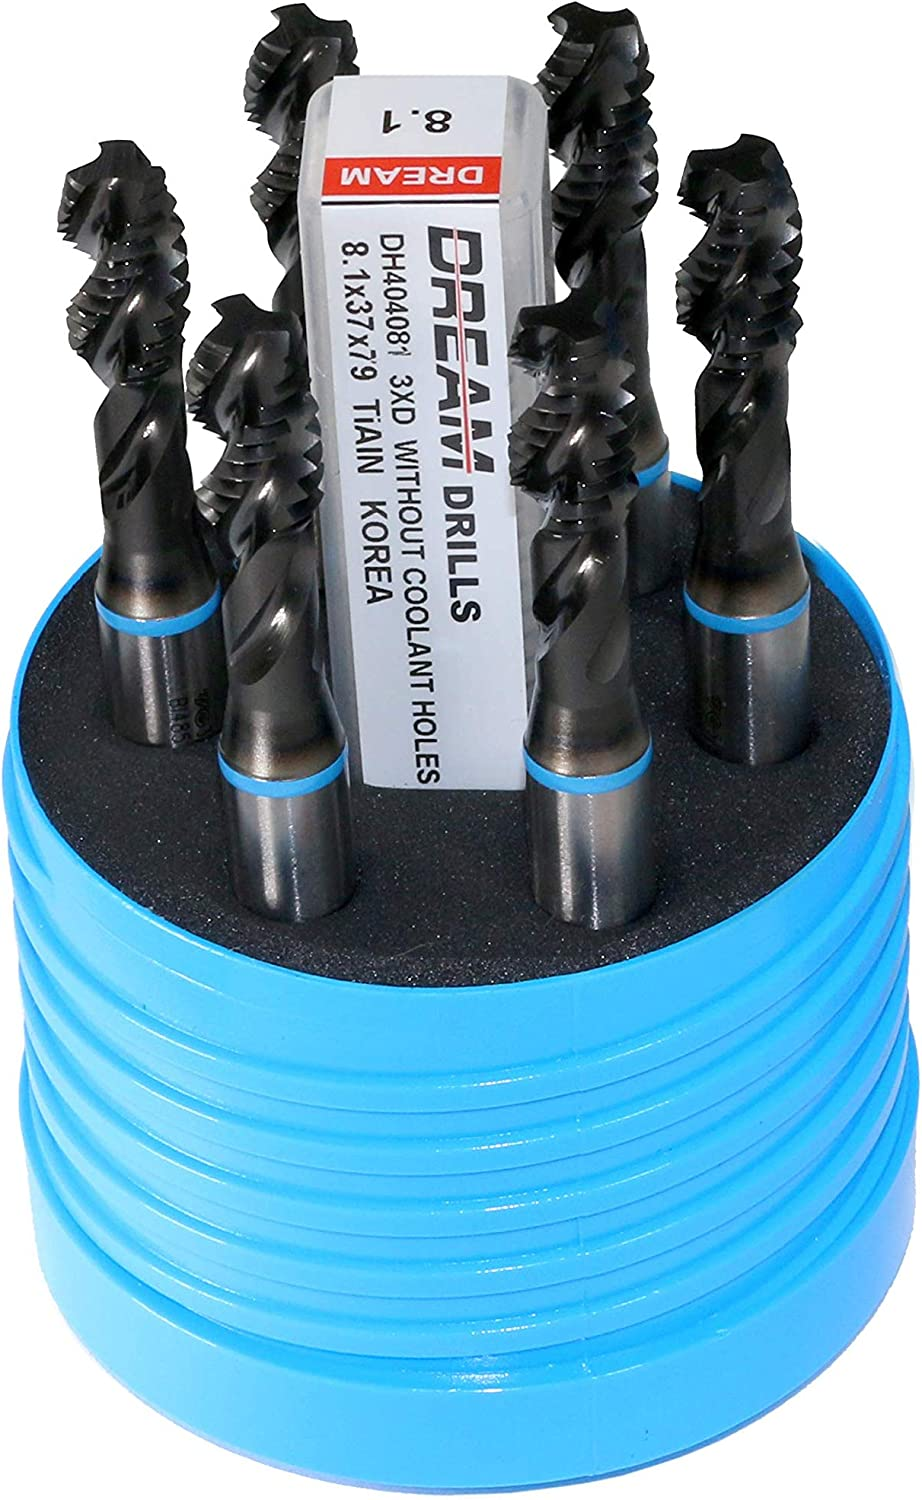 H3 YG-1 Blue Ring Drill and Tap Kit #10-24